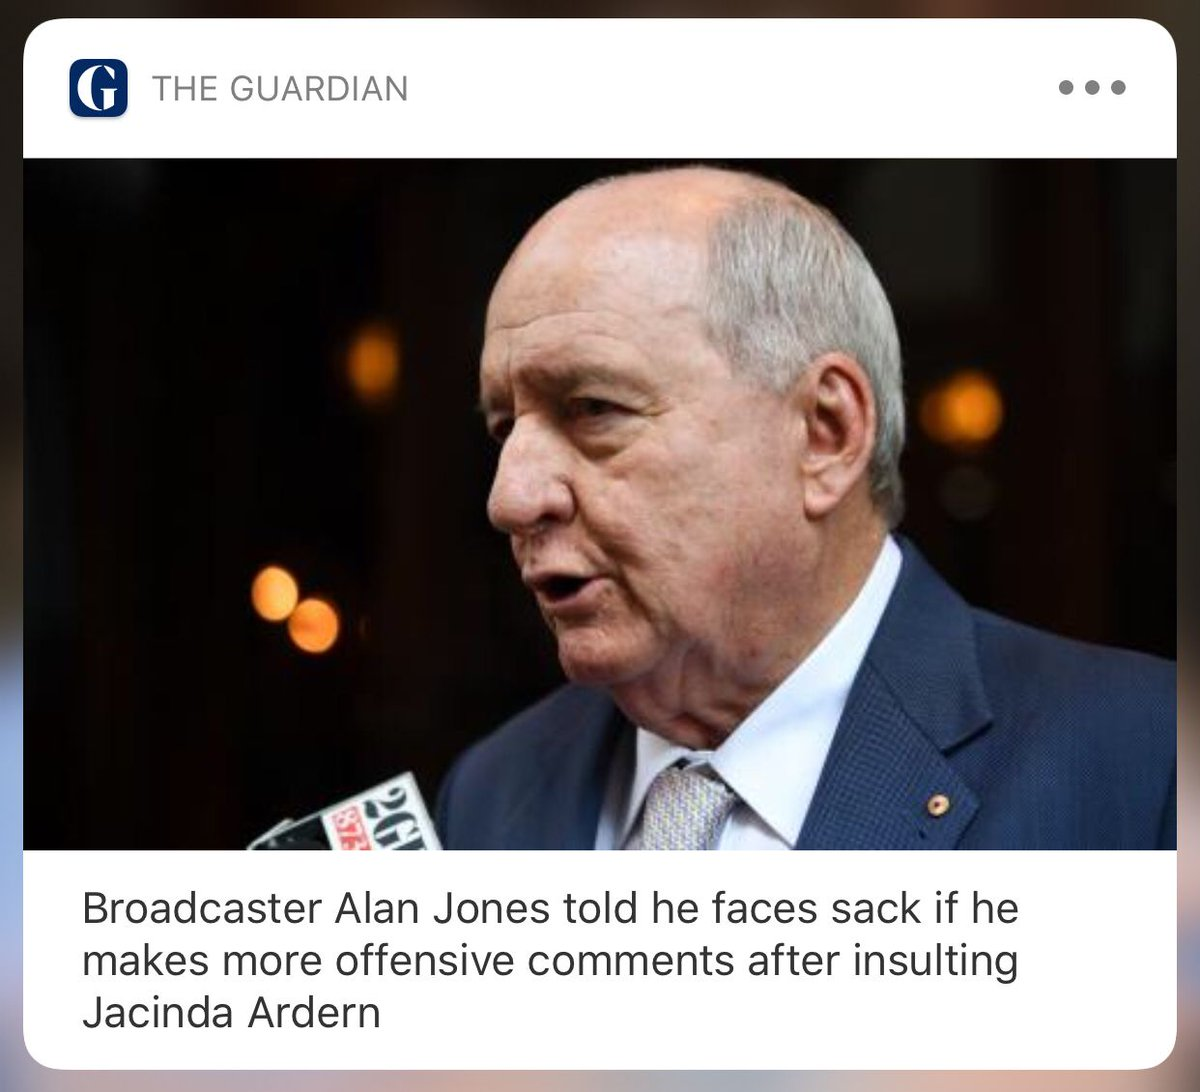 #BREAKING: Alan Jones told he will be sacked if he makes more offensive comments. I have today discussed the matter with Alan and advised him that any recurrence of commentary of this nature will result in the termination of his contract buff.ly/2TP70S5 from @meadea